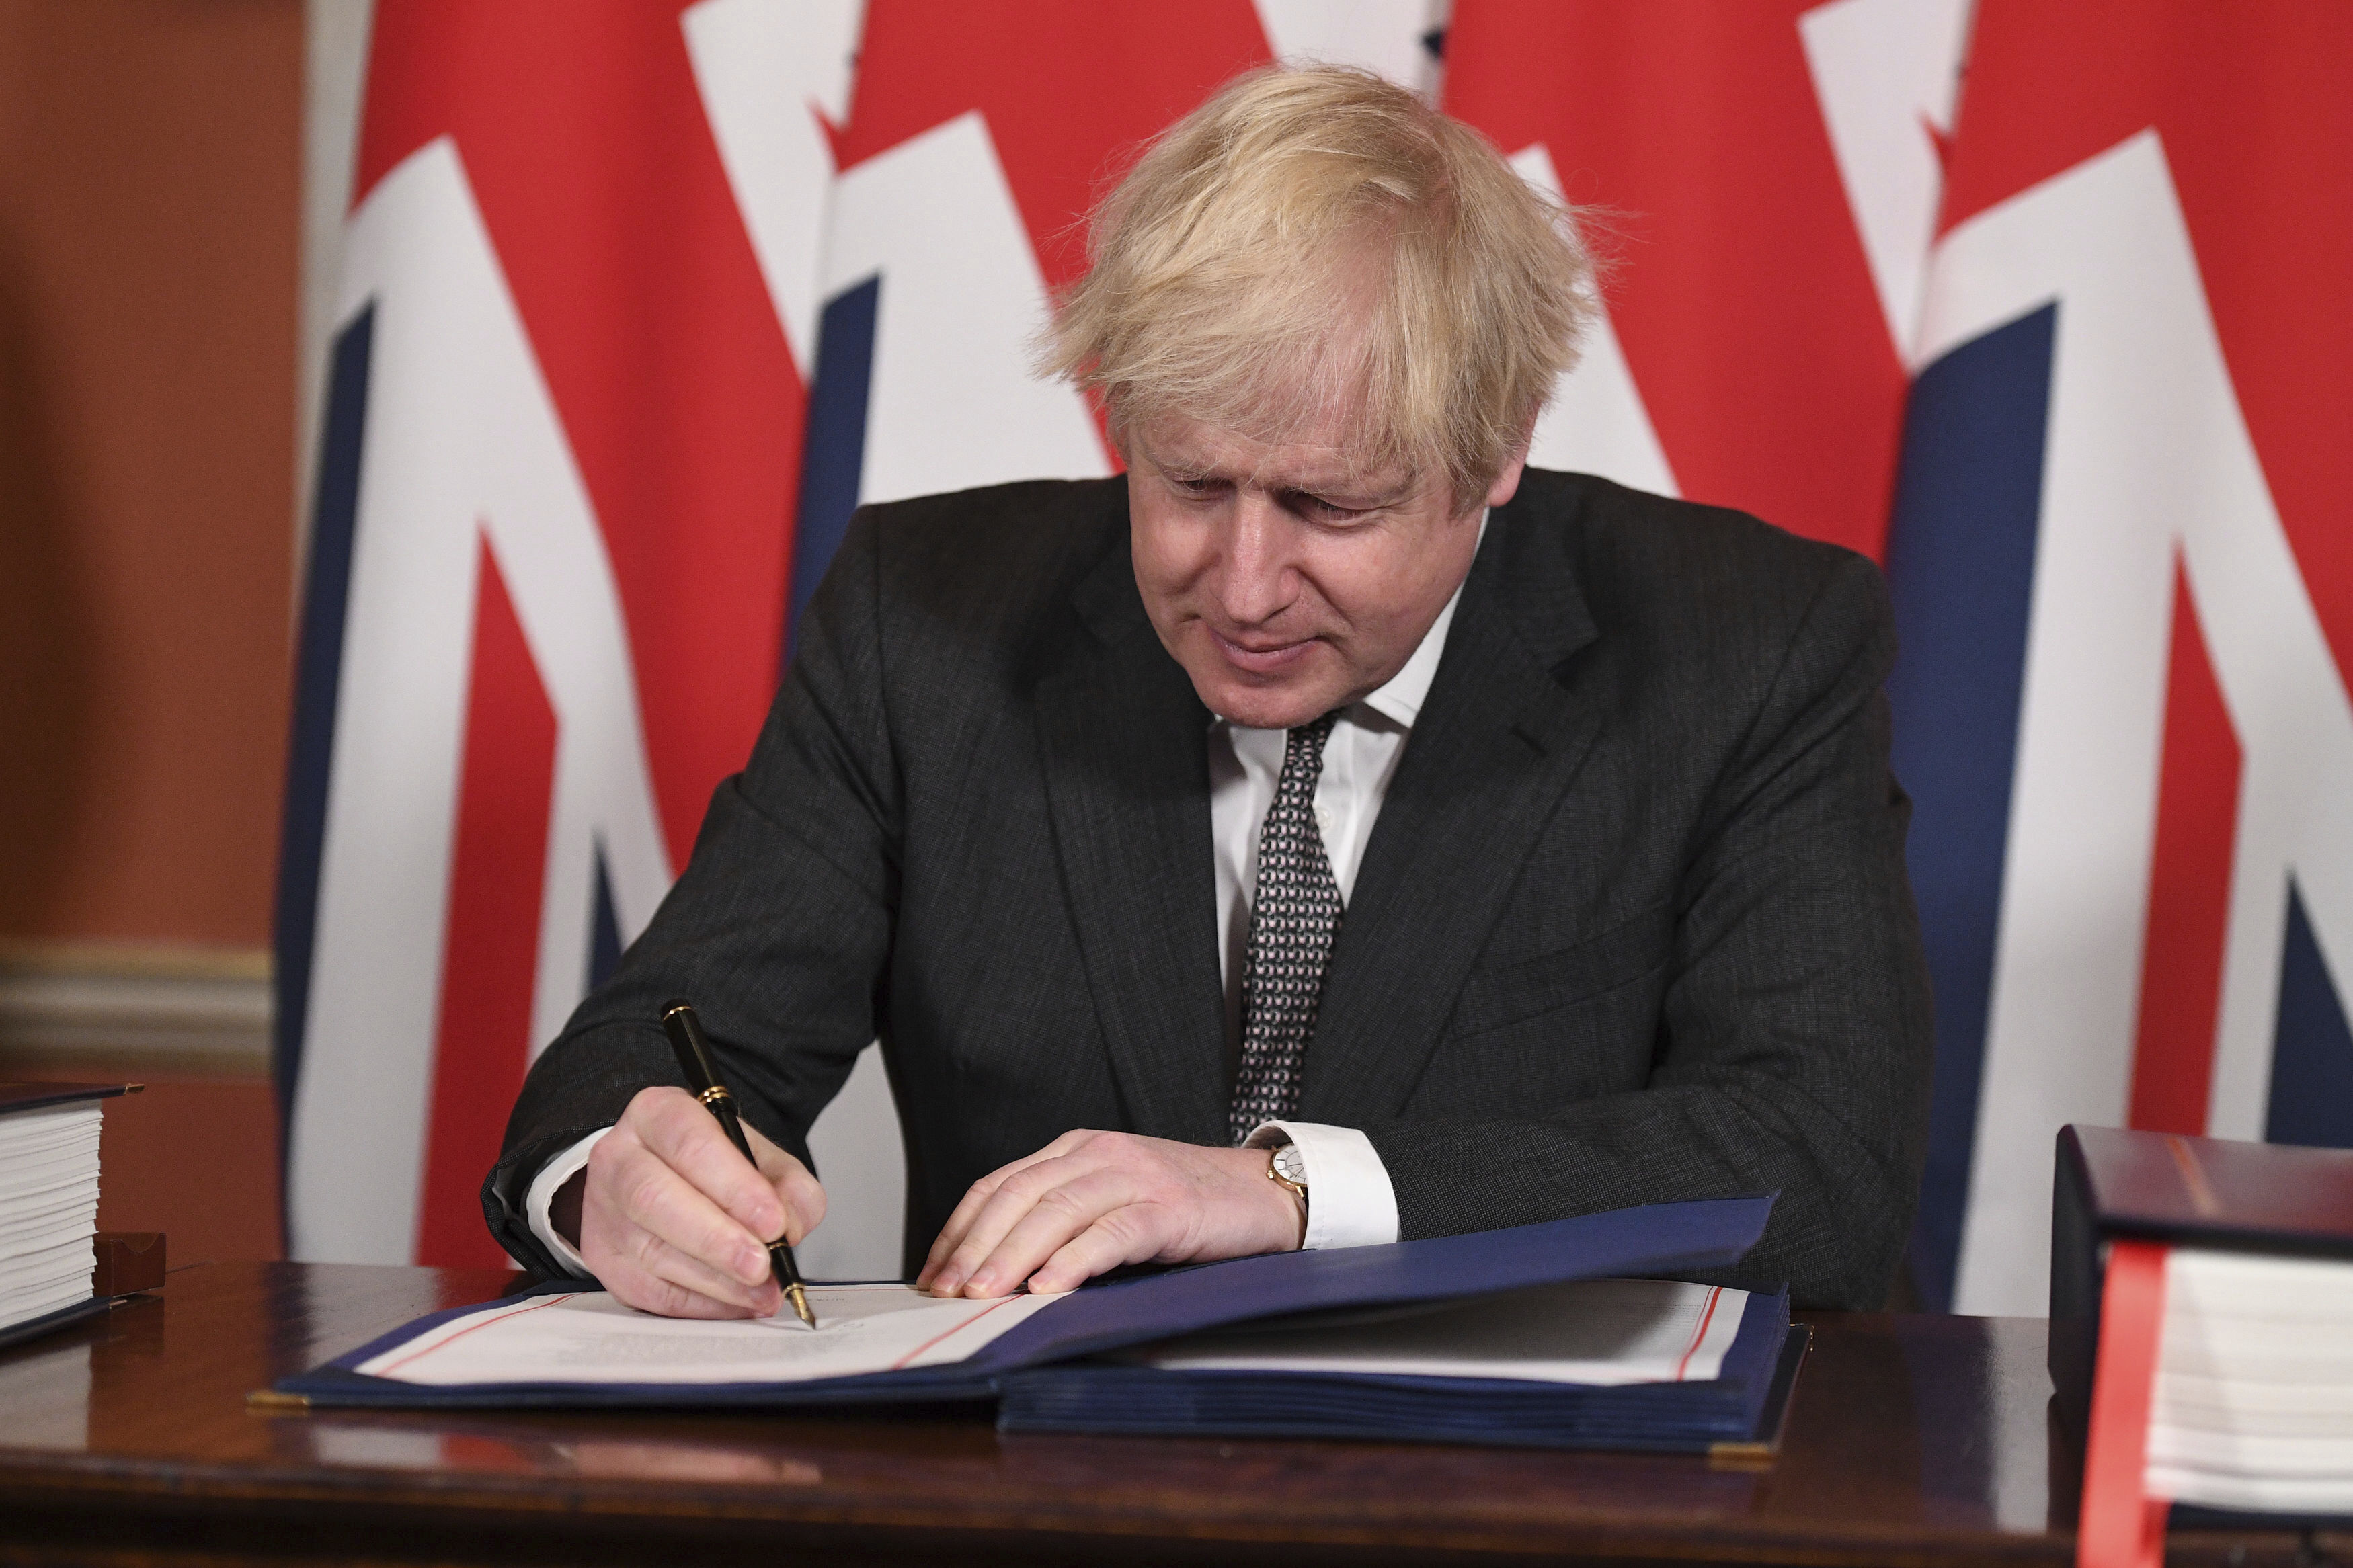 Britain's Prime Minister Boris Johnson signs the EU-UK Trade and Cooperation Agreement at 10 Downing Street, London Wednesday Dec. 30, 2020.